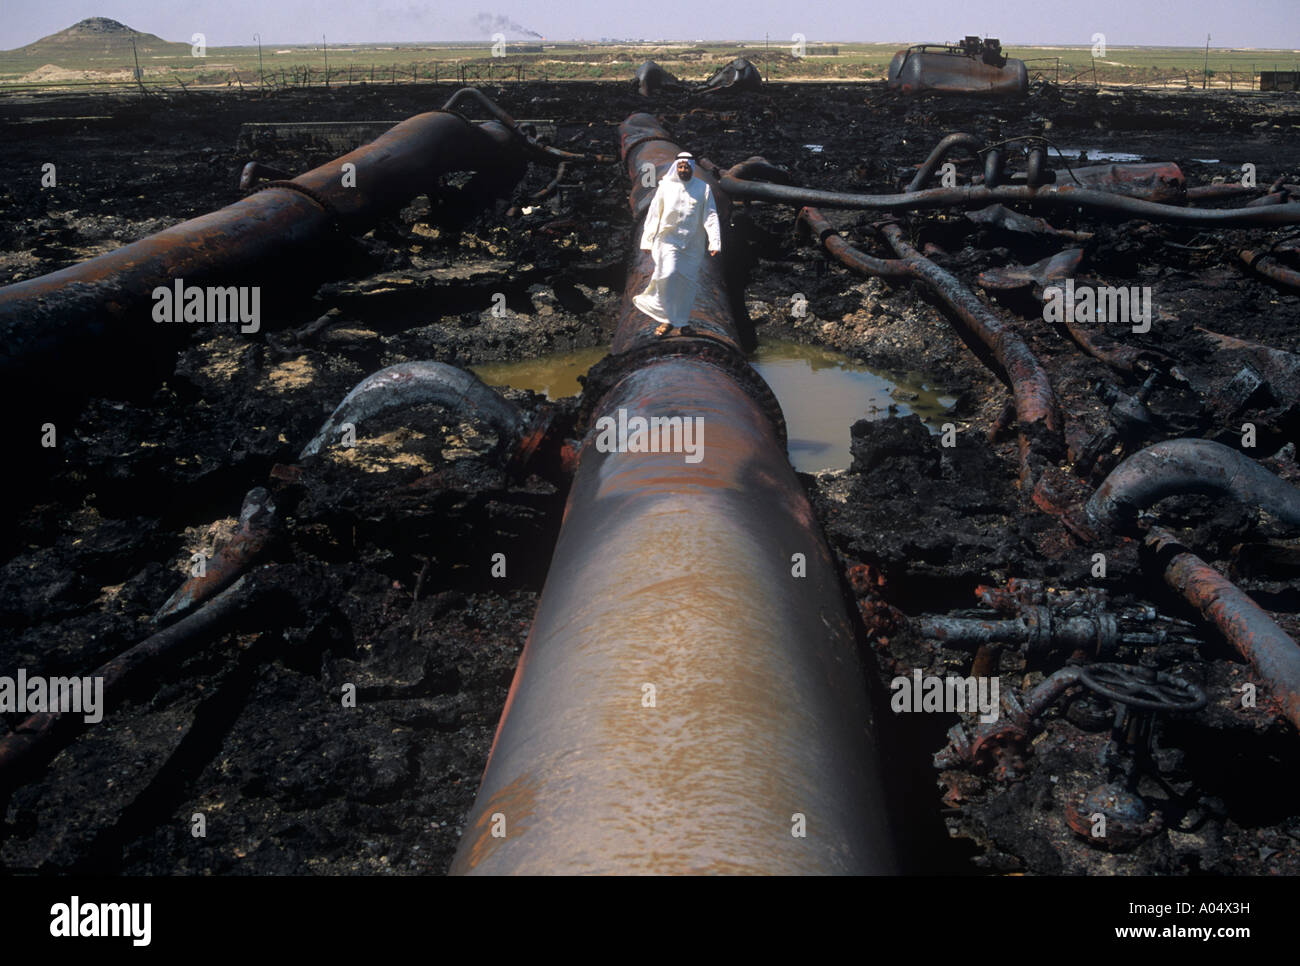 A Kuwaiti standing on oil pipelines bombed and burned by Iraq during the first Gulf War - Stock Image